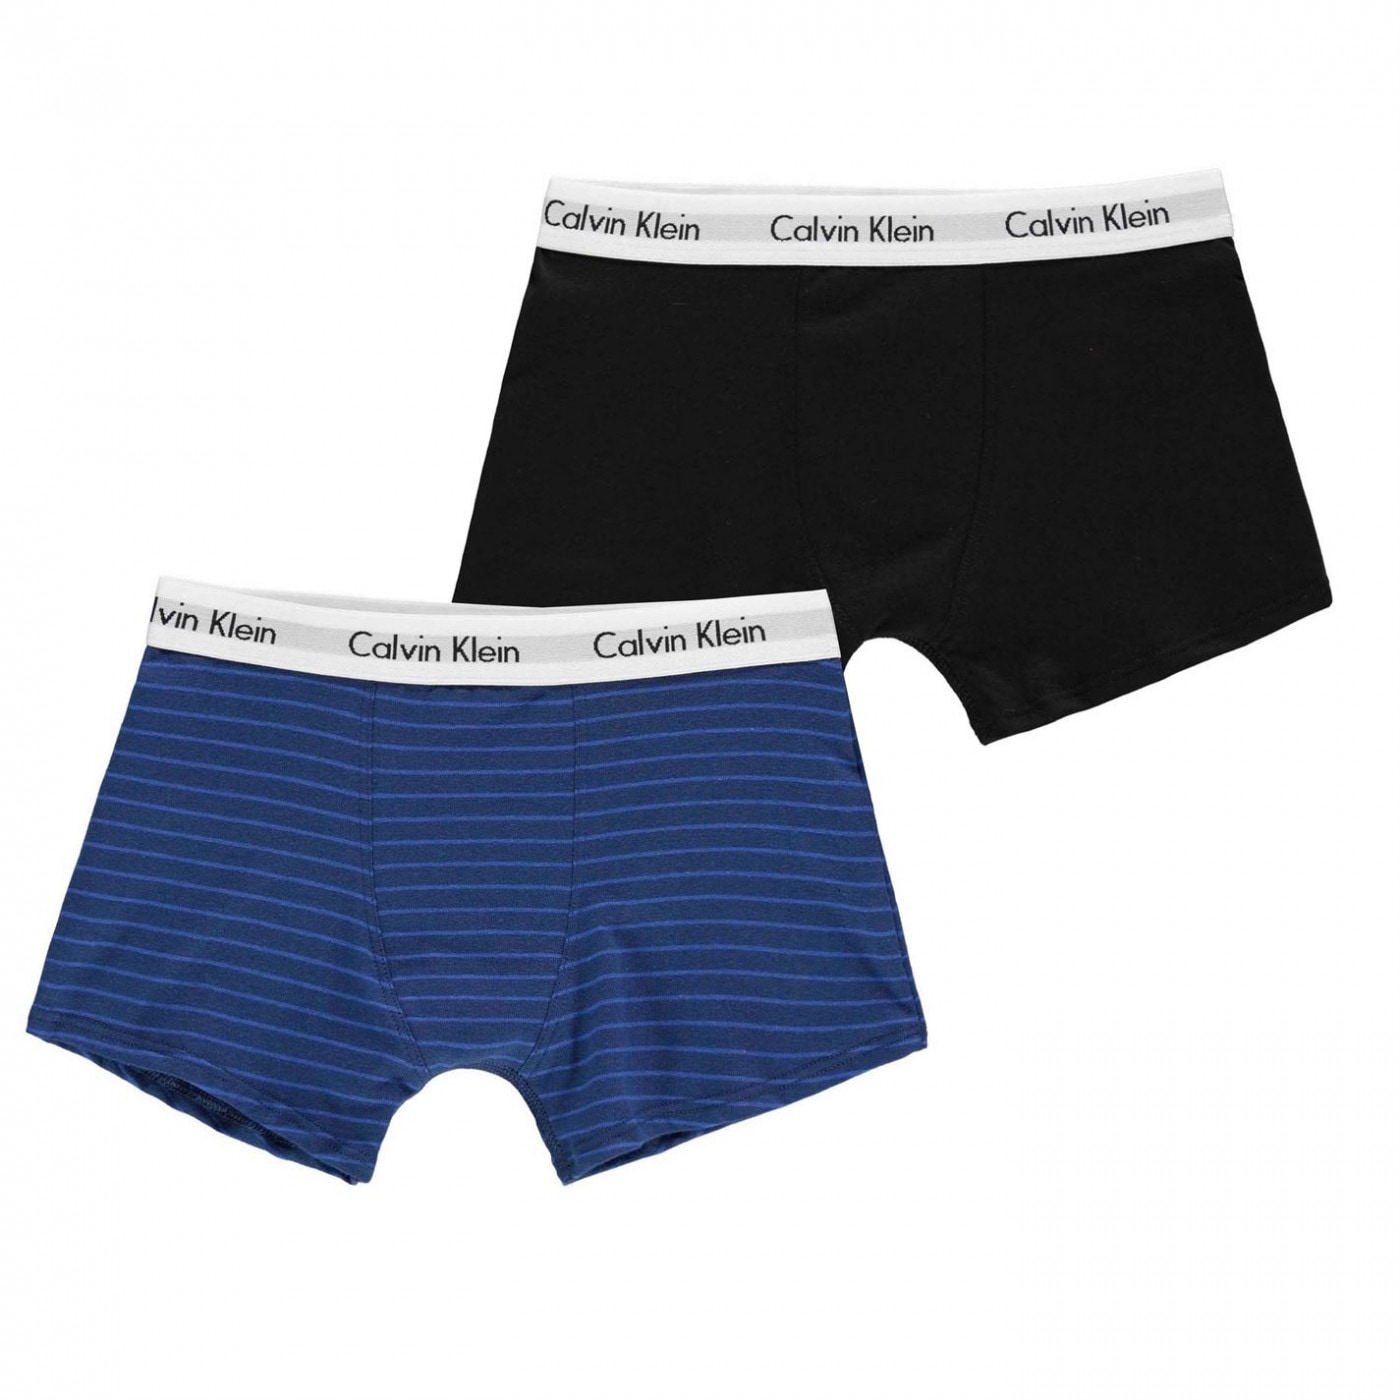 b428fd935c Calvin Klein 2 Pack Trunks - FACTCOOL